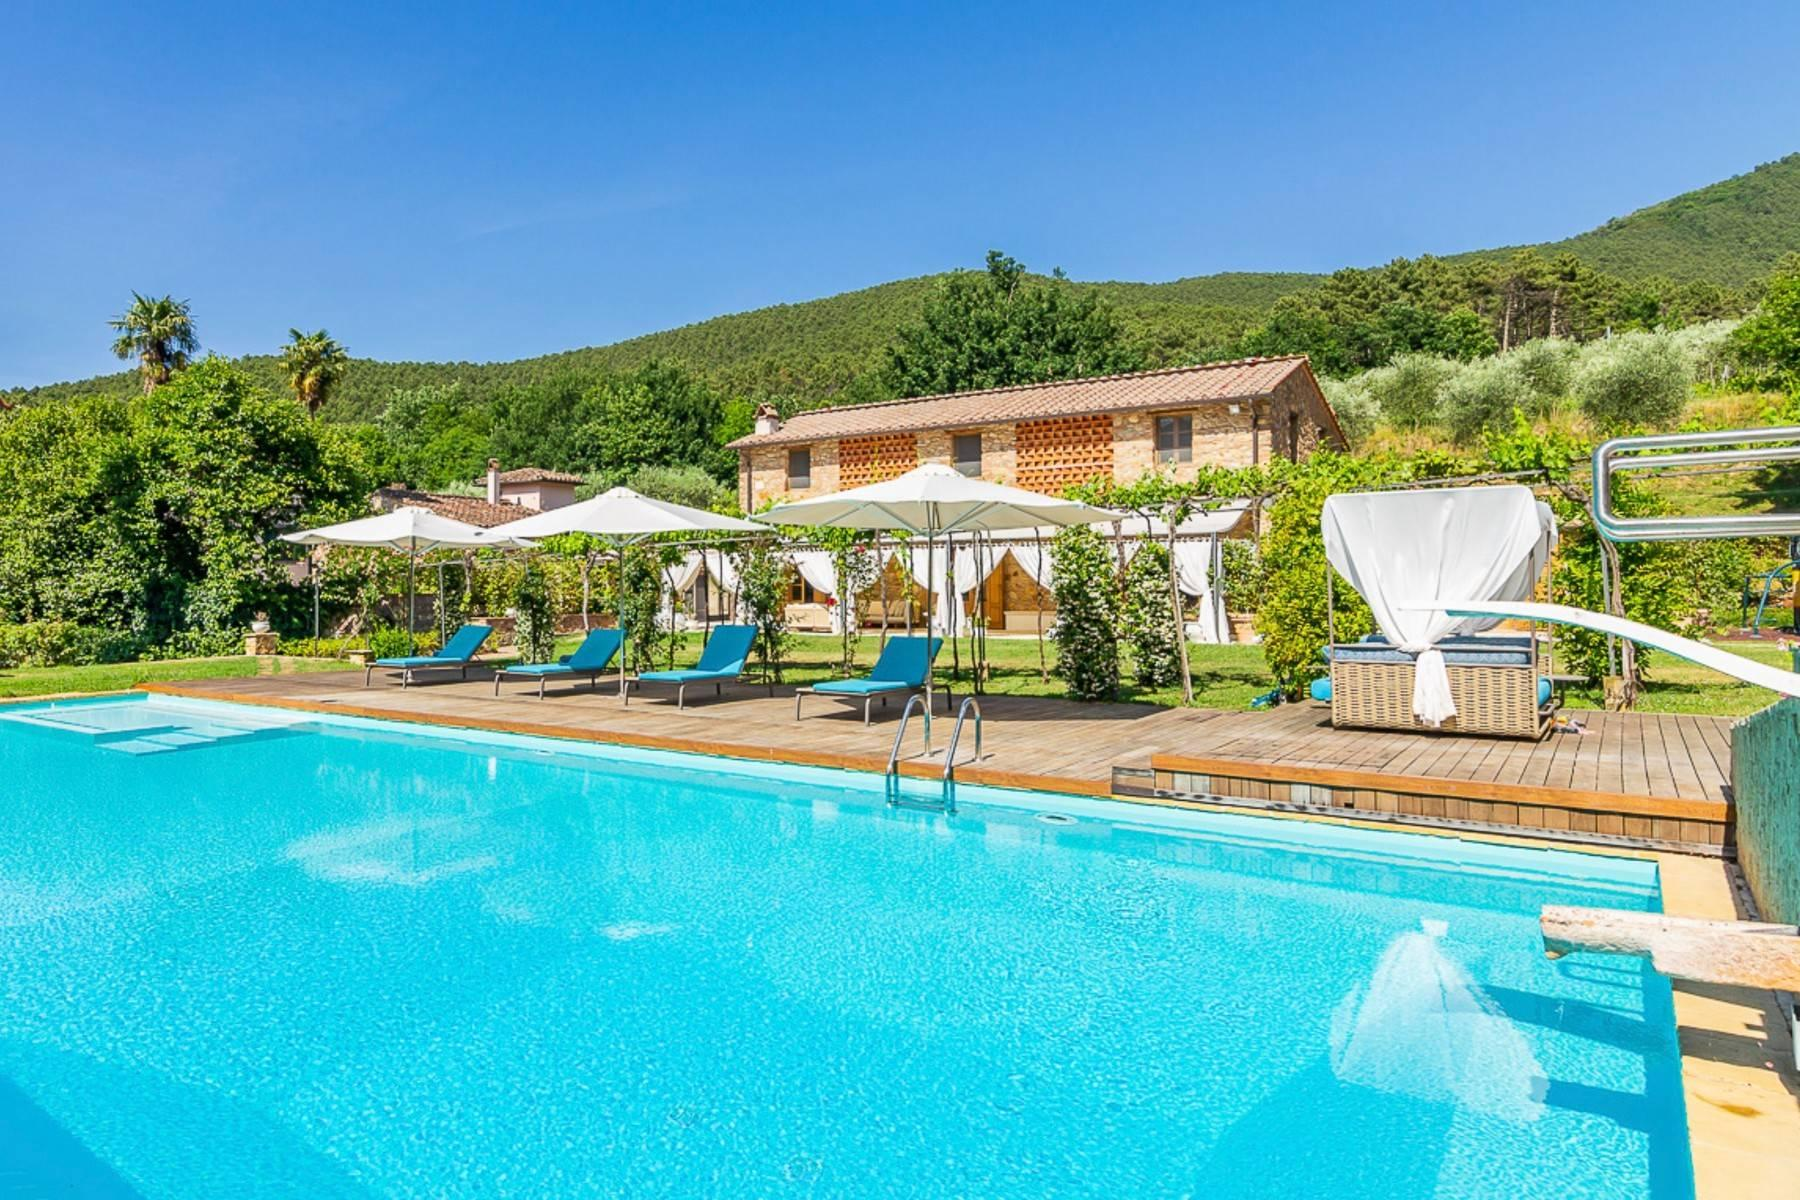 Majestic Luxury Villa with outbuildings on the hills south of Lucca - 4